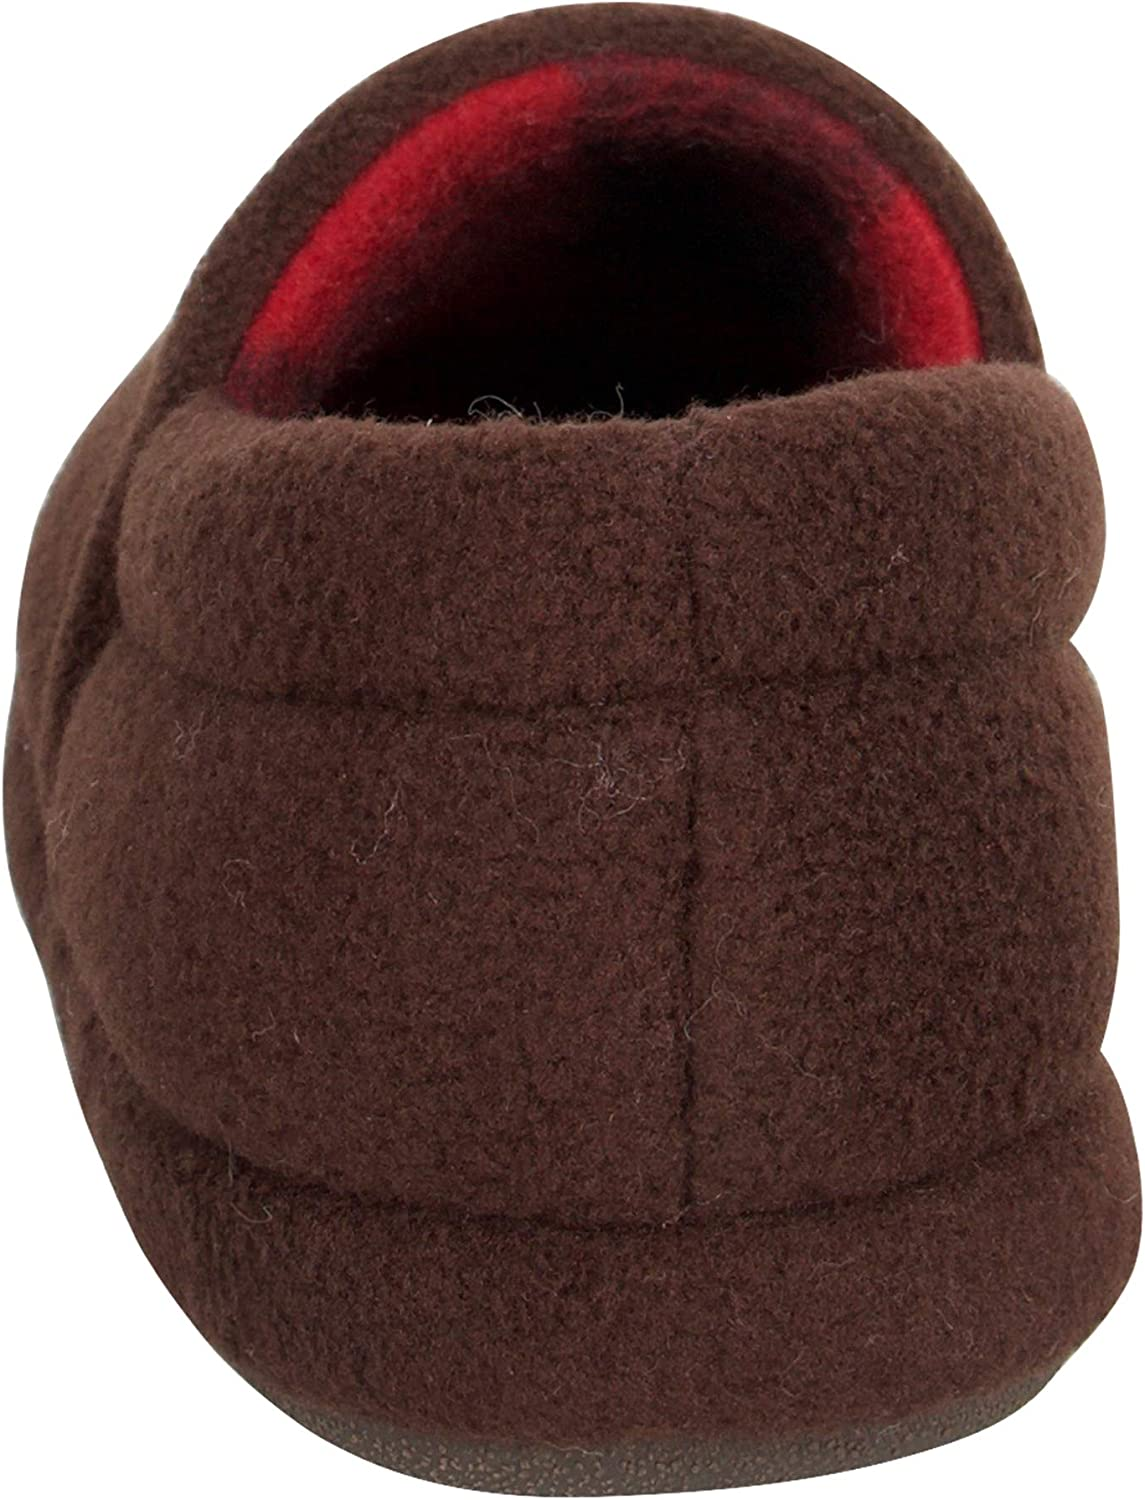 Chaps Unisex-Child Closed Back Fleece Slipper House Shoe with Indoor/Outdoor Nonslip Sole